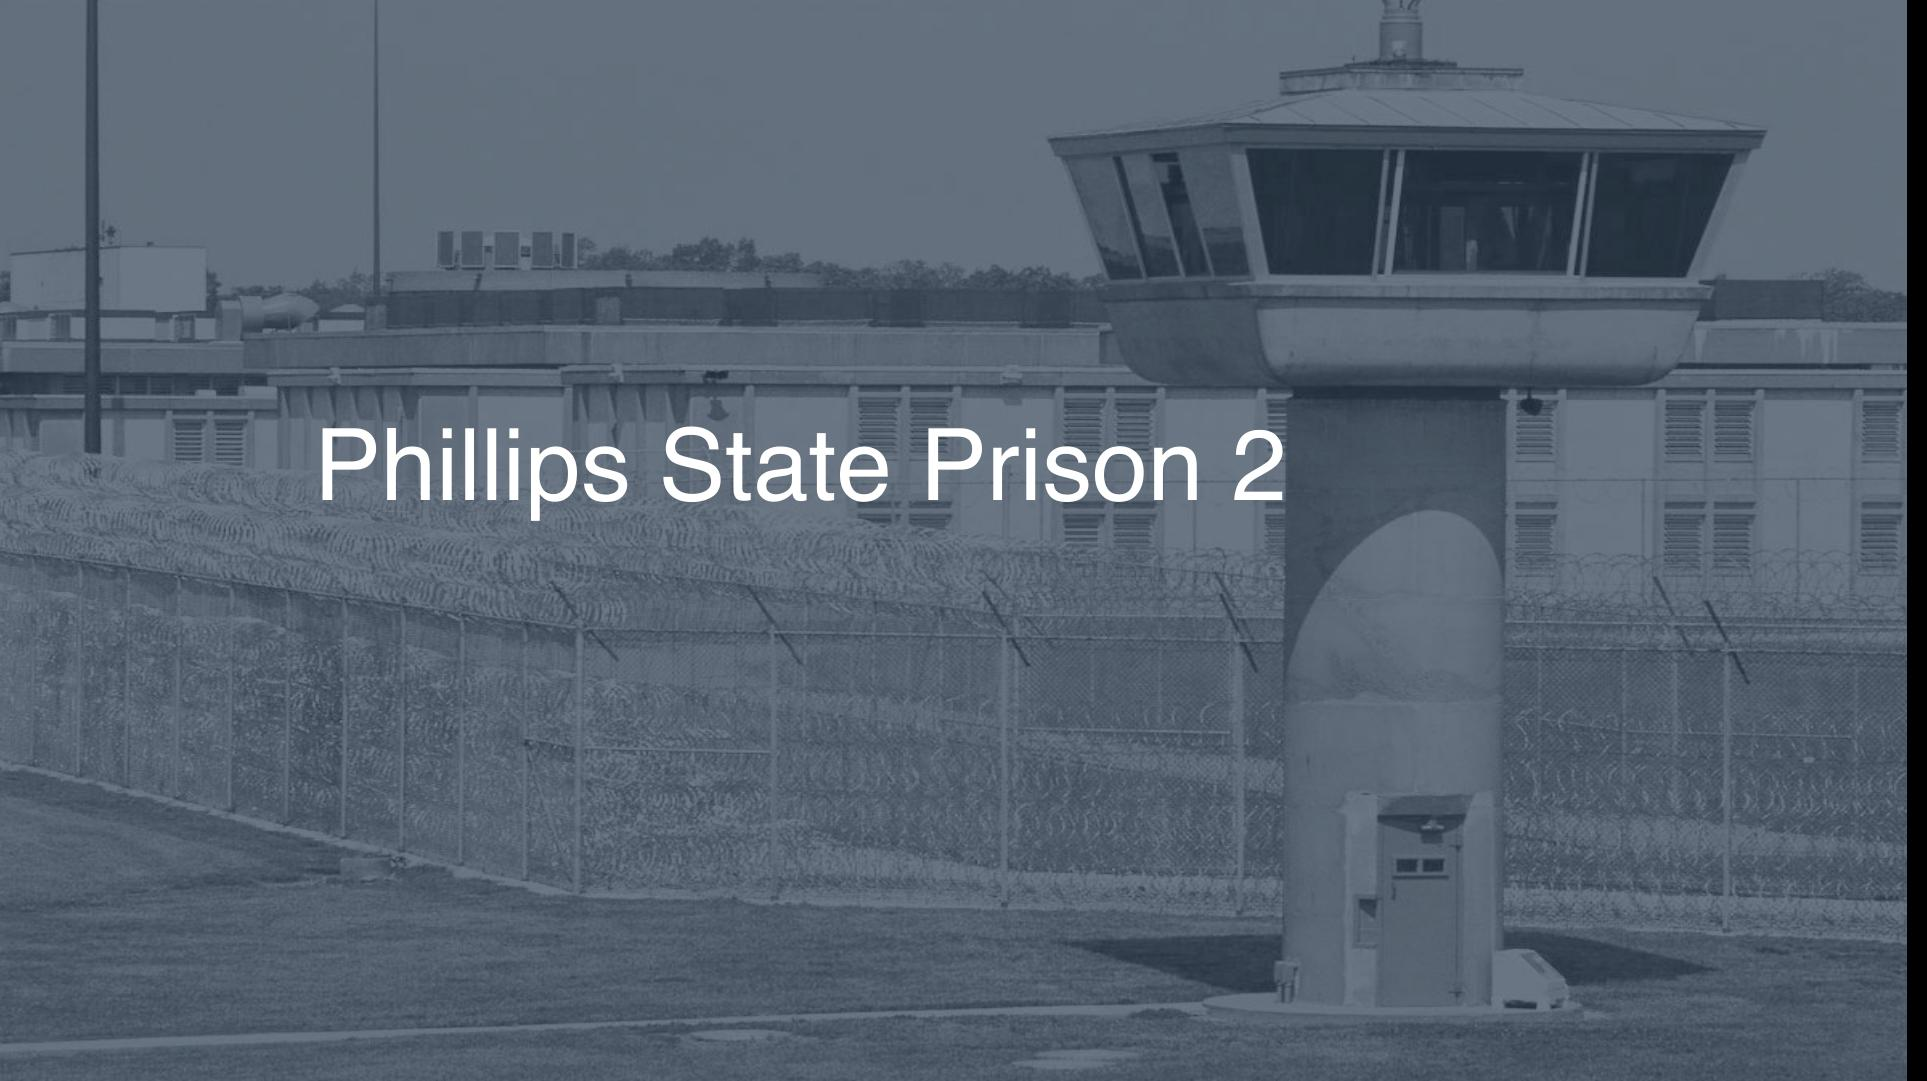 Phillips State Prison correctional facility picture